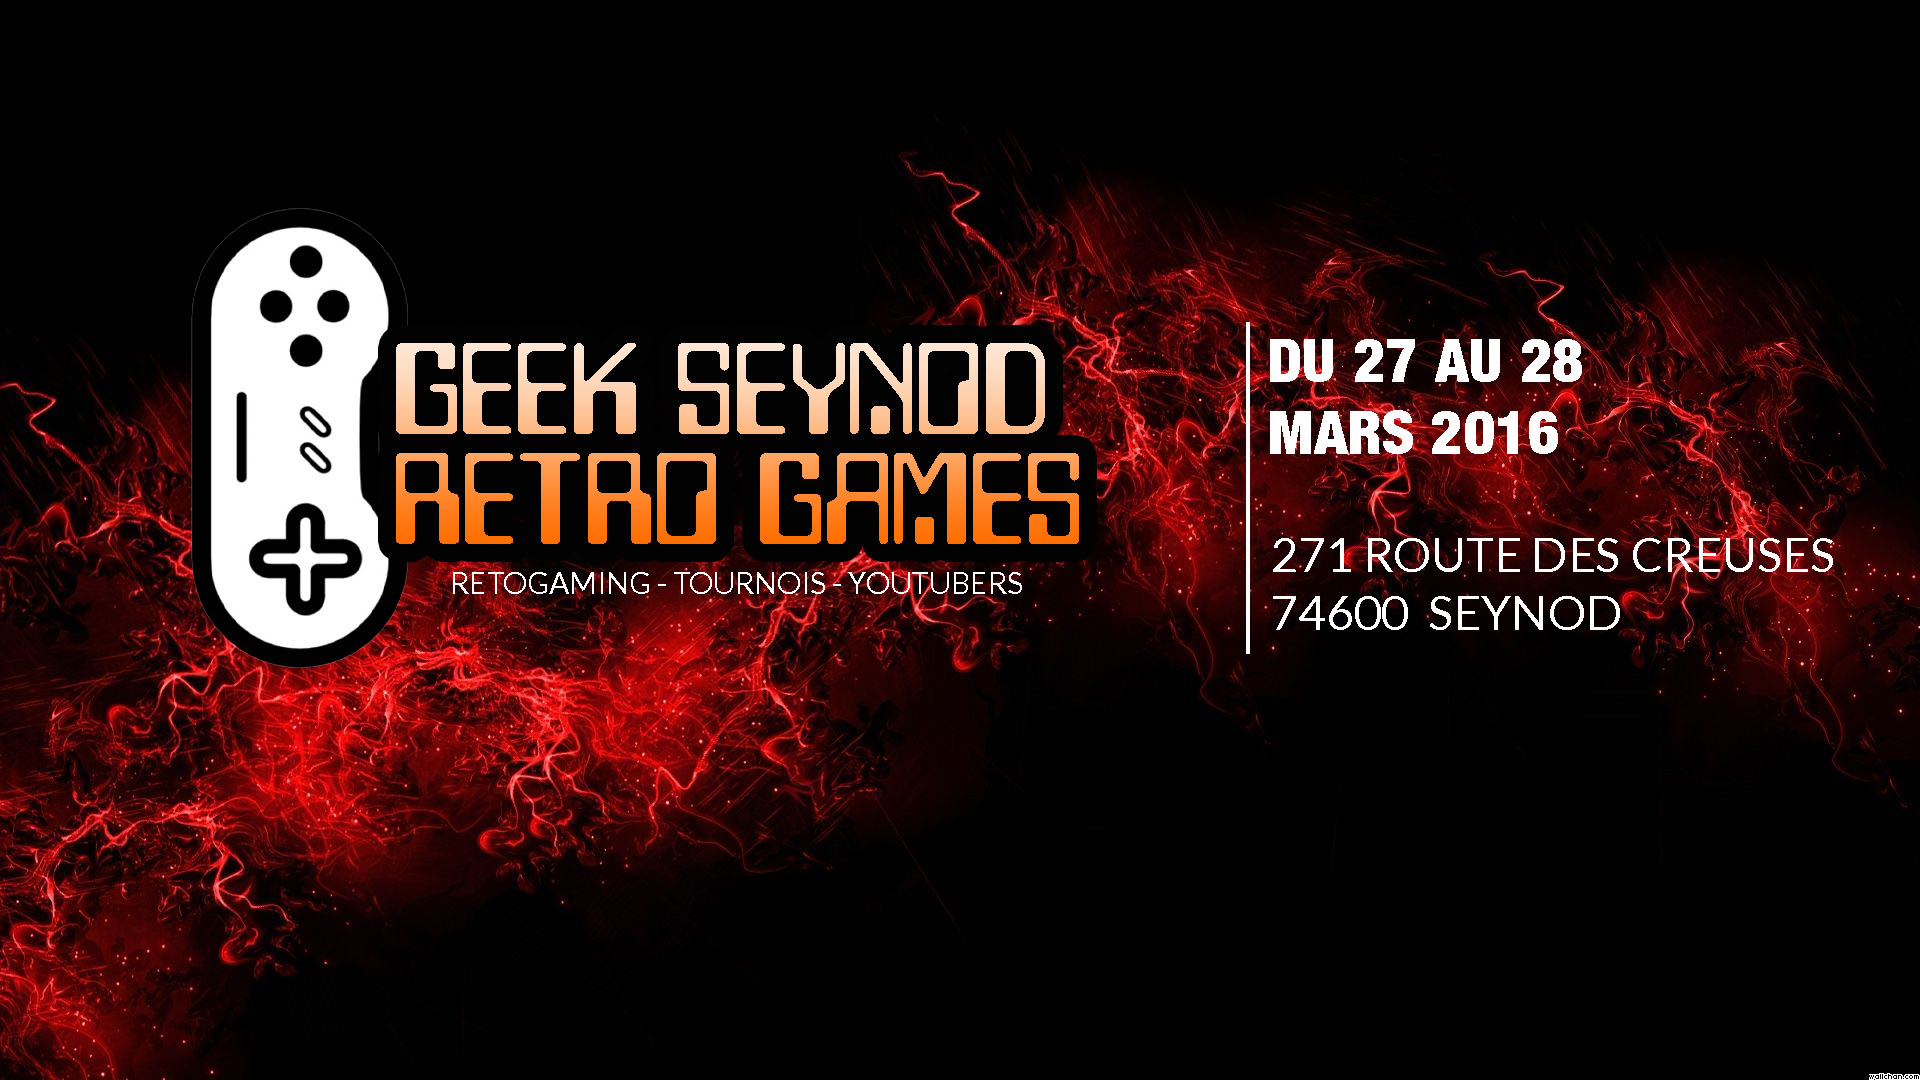 Geek Seynod Retro Game #1